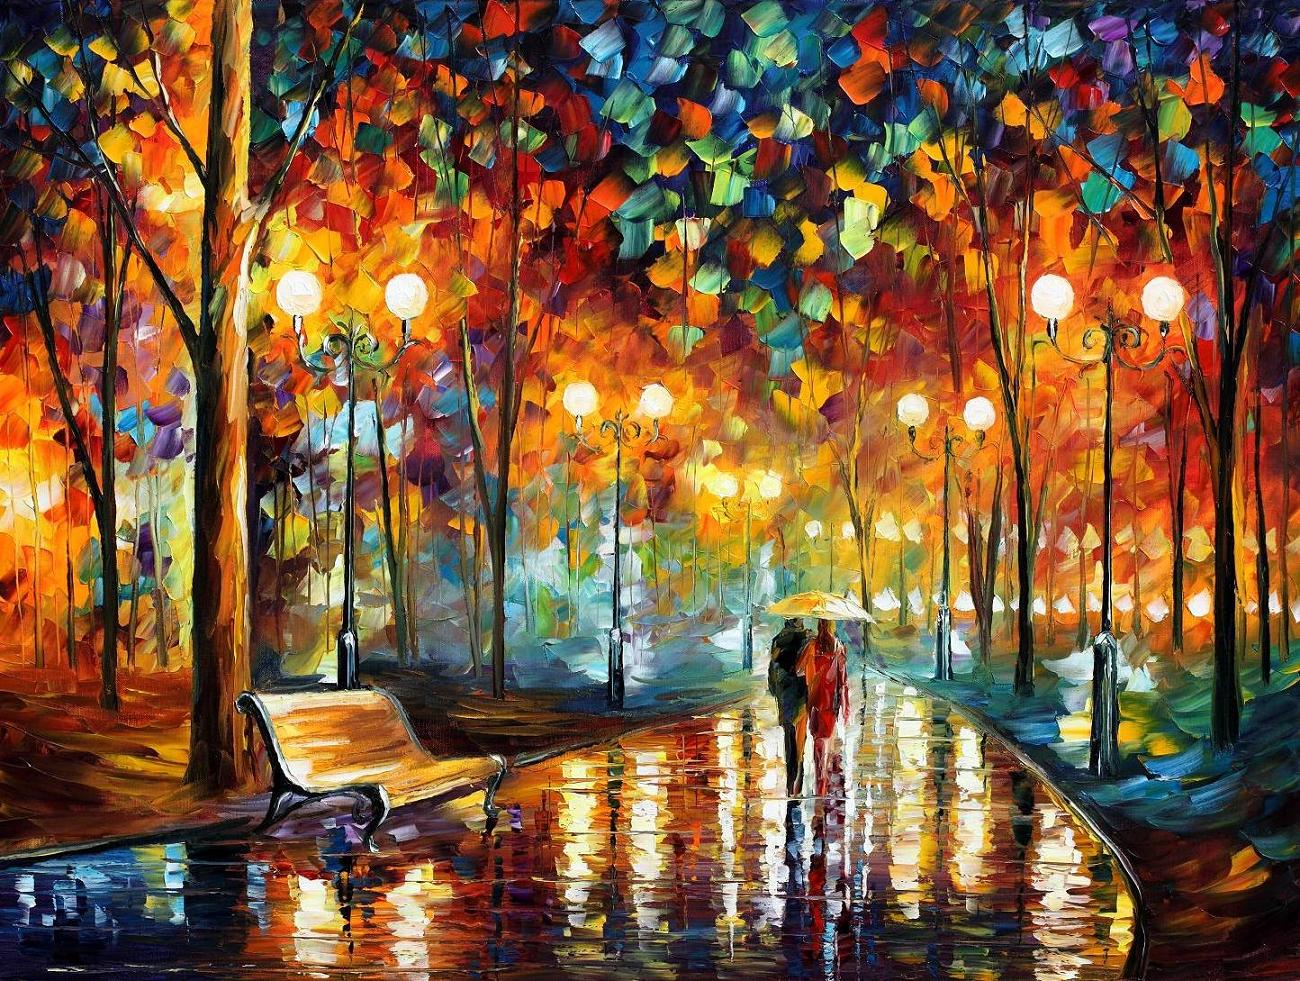 RAIN'S RUSTLE — PALETTE KNIFE Oil Painting On Canvas By Leonid Afremov - Size 36x48